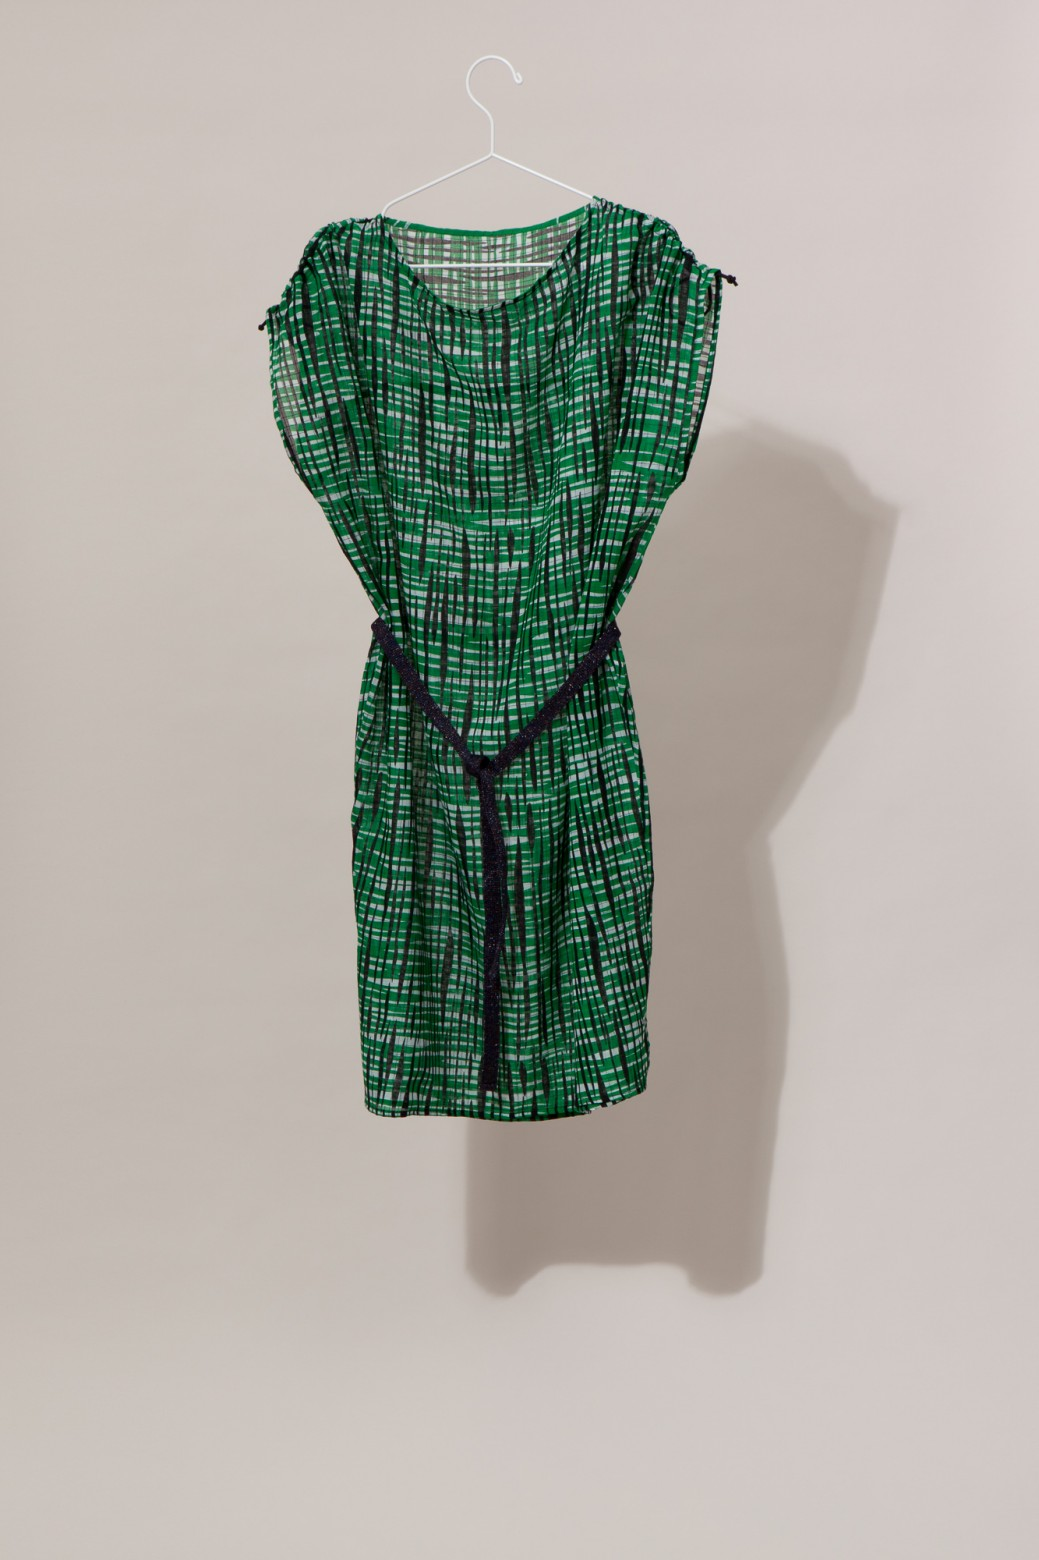 DADA RETRO GREEN DRESS